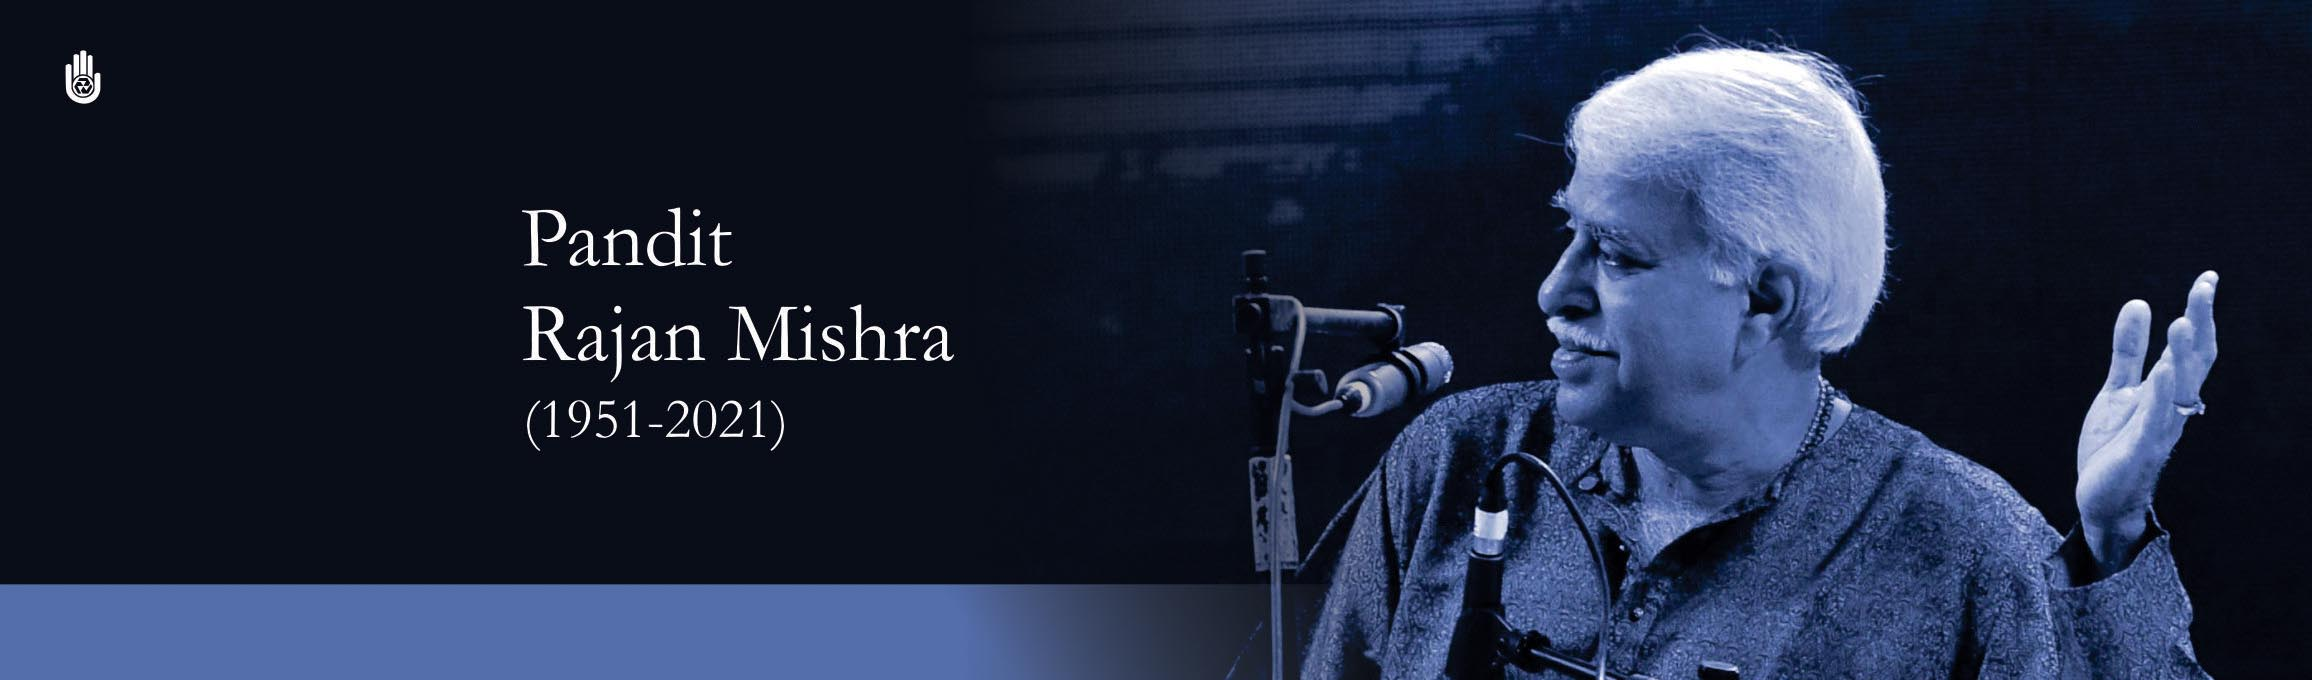 We are deeply saddened by the passing of classical maestro Pandit Rajan Mishra